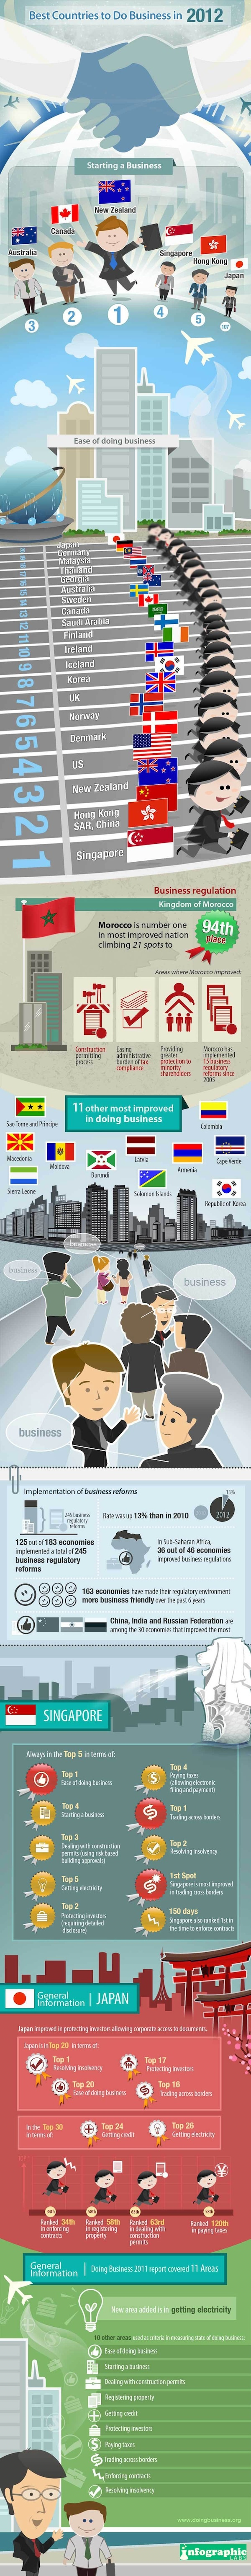 The World's Most Business-Friendly Countries in 2012 #Global #business #smallbiz #infographic http://onsal.es/GDzEIN